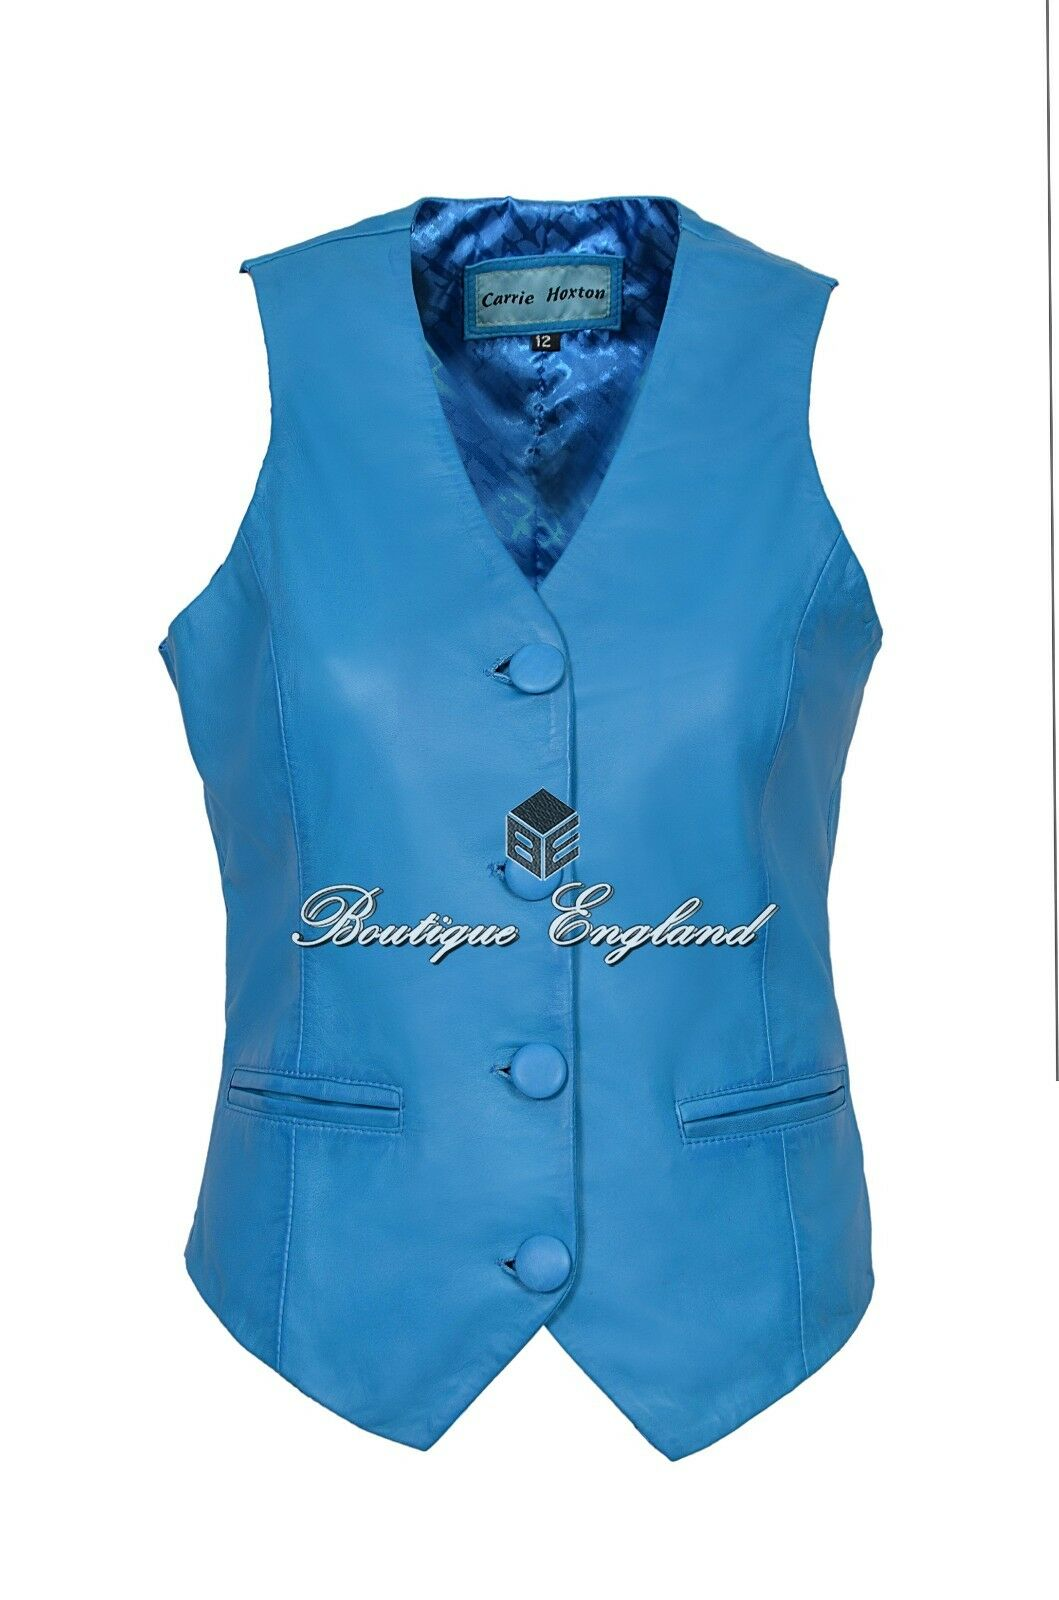 Ladies Waistcoat bluee Leather Casual Party Fashion Vest 1005 SOFT LAMBSKIN